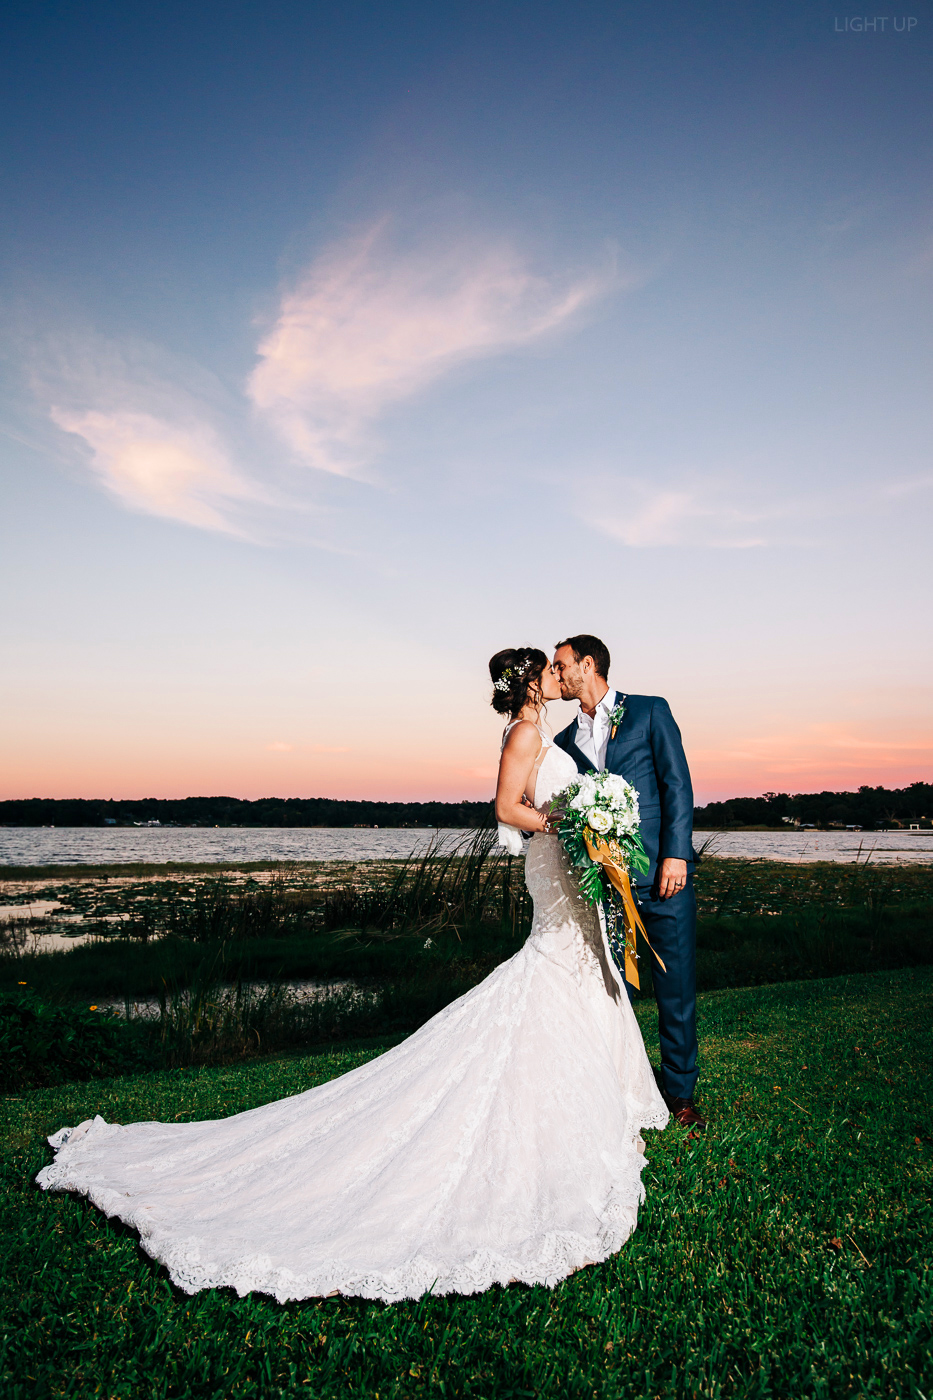 sunset wedding photo in mount dora